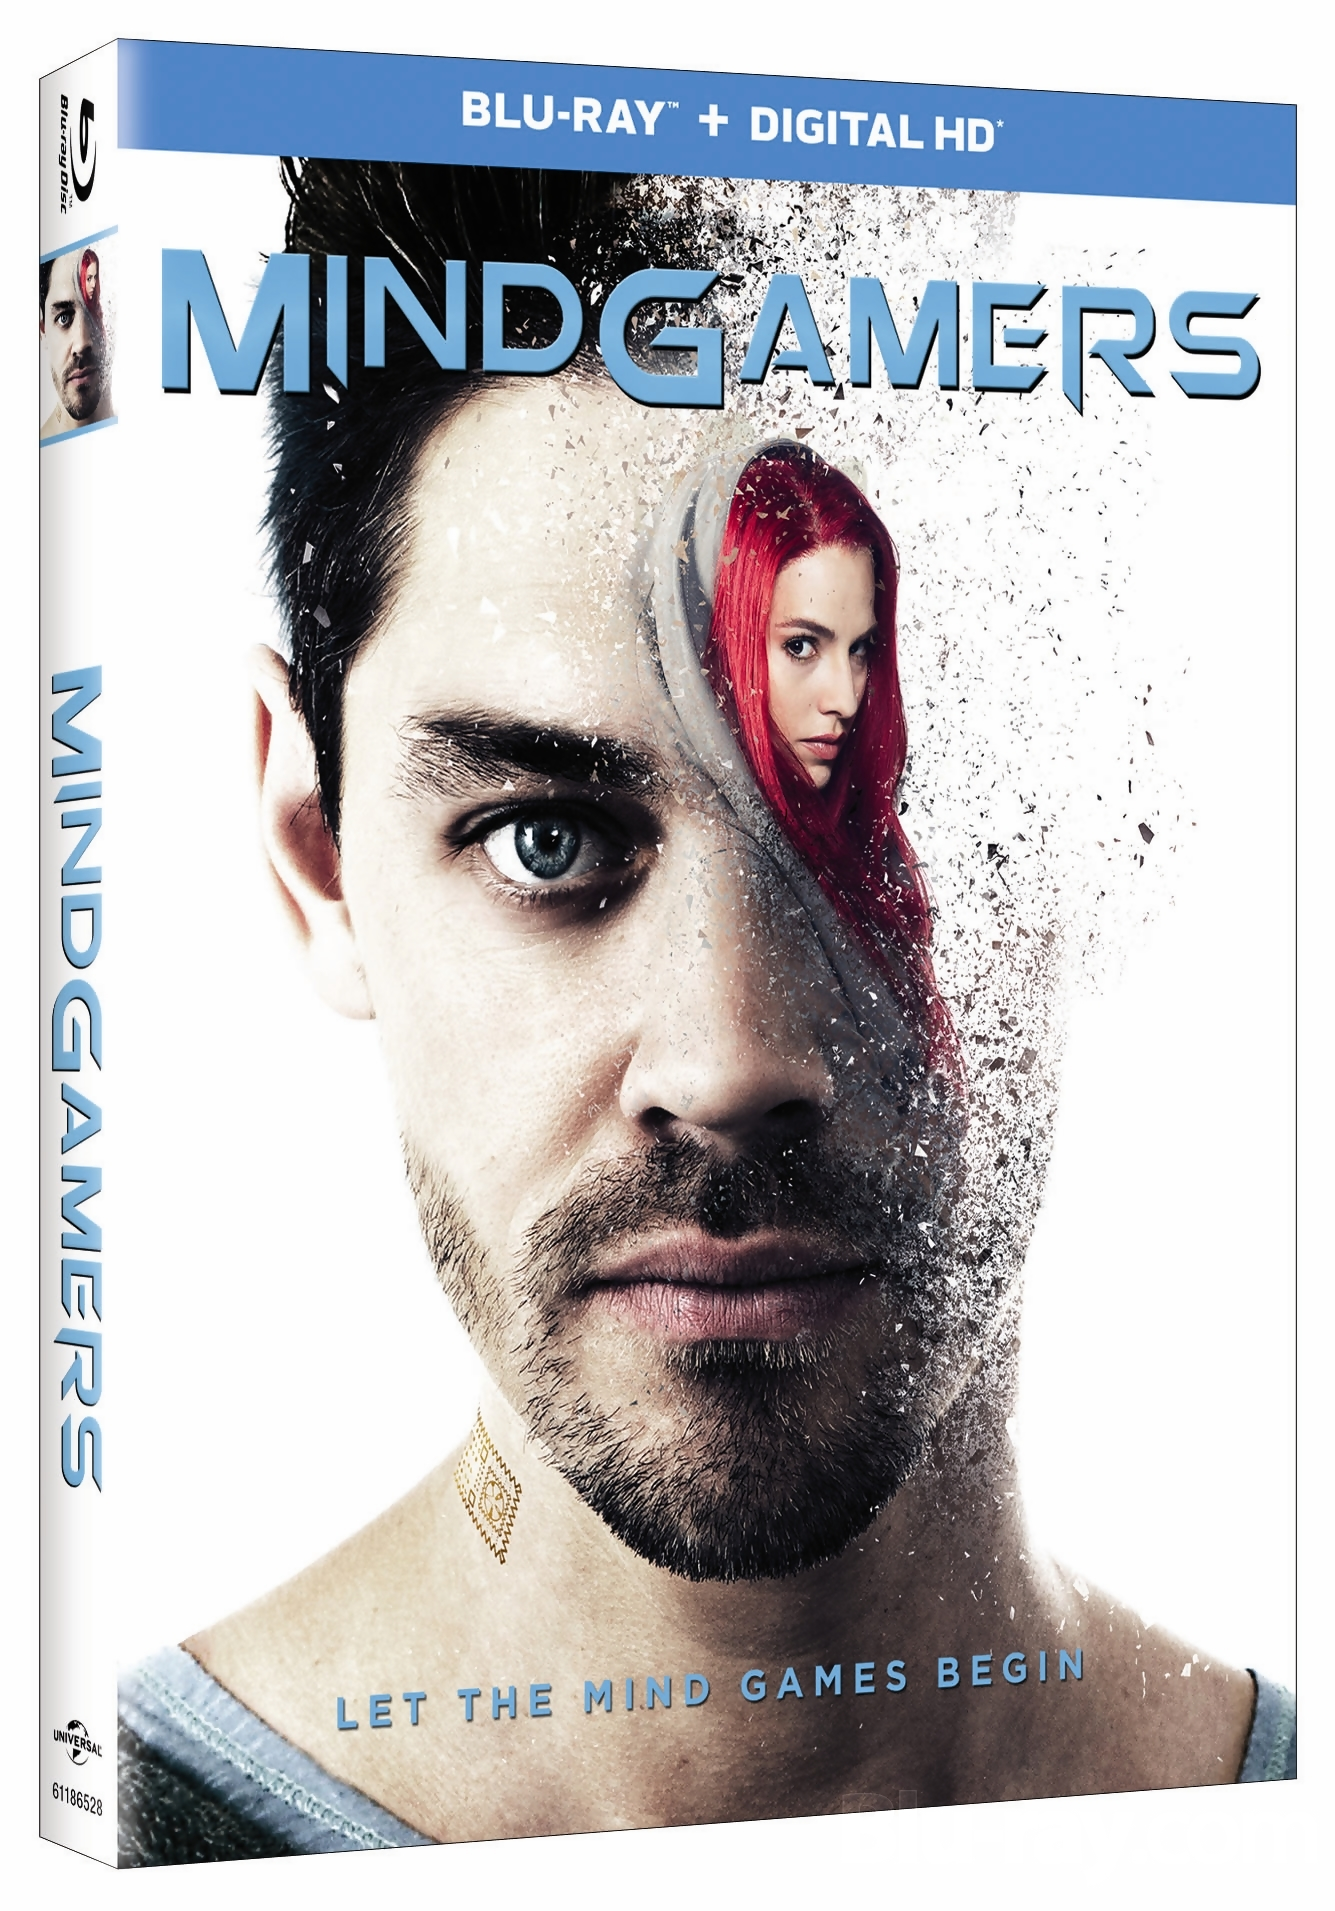 MindGamers Blu-ray Review